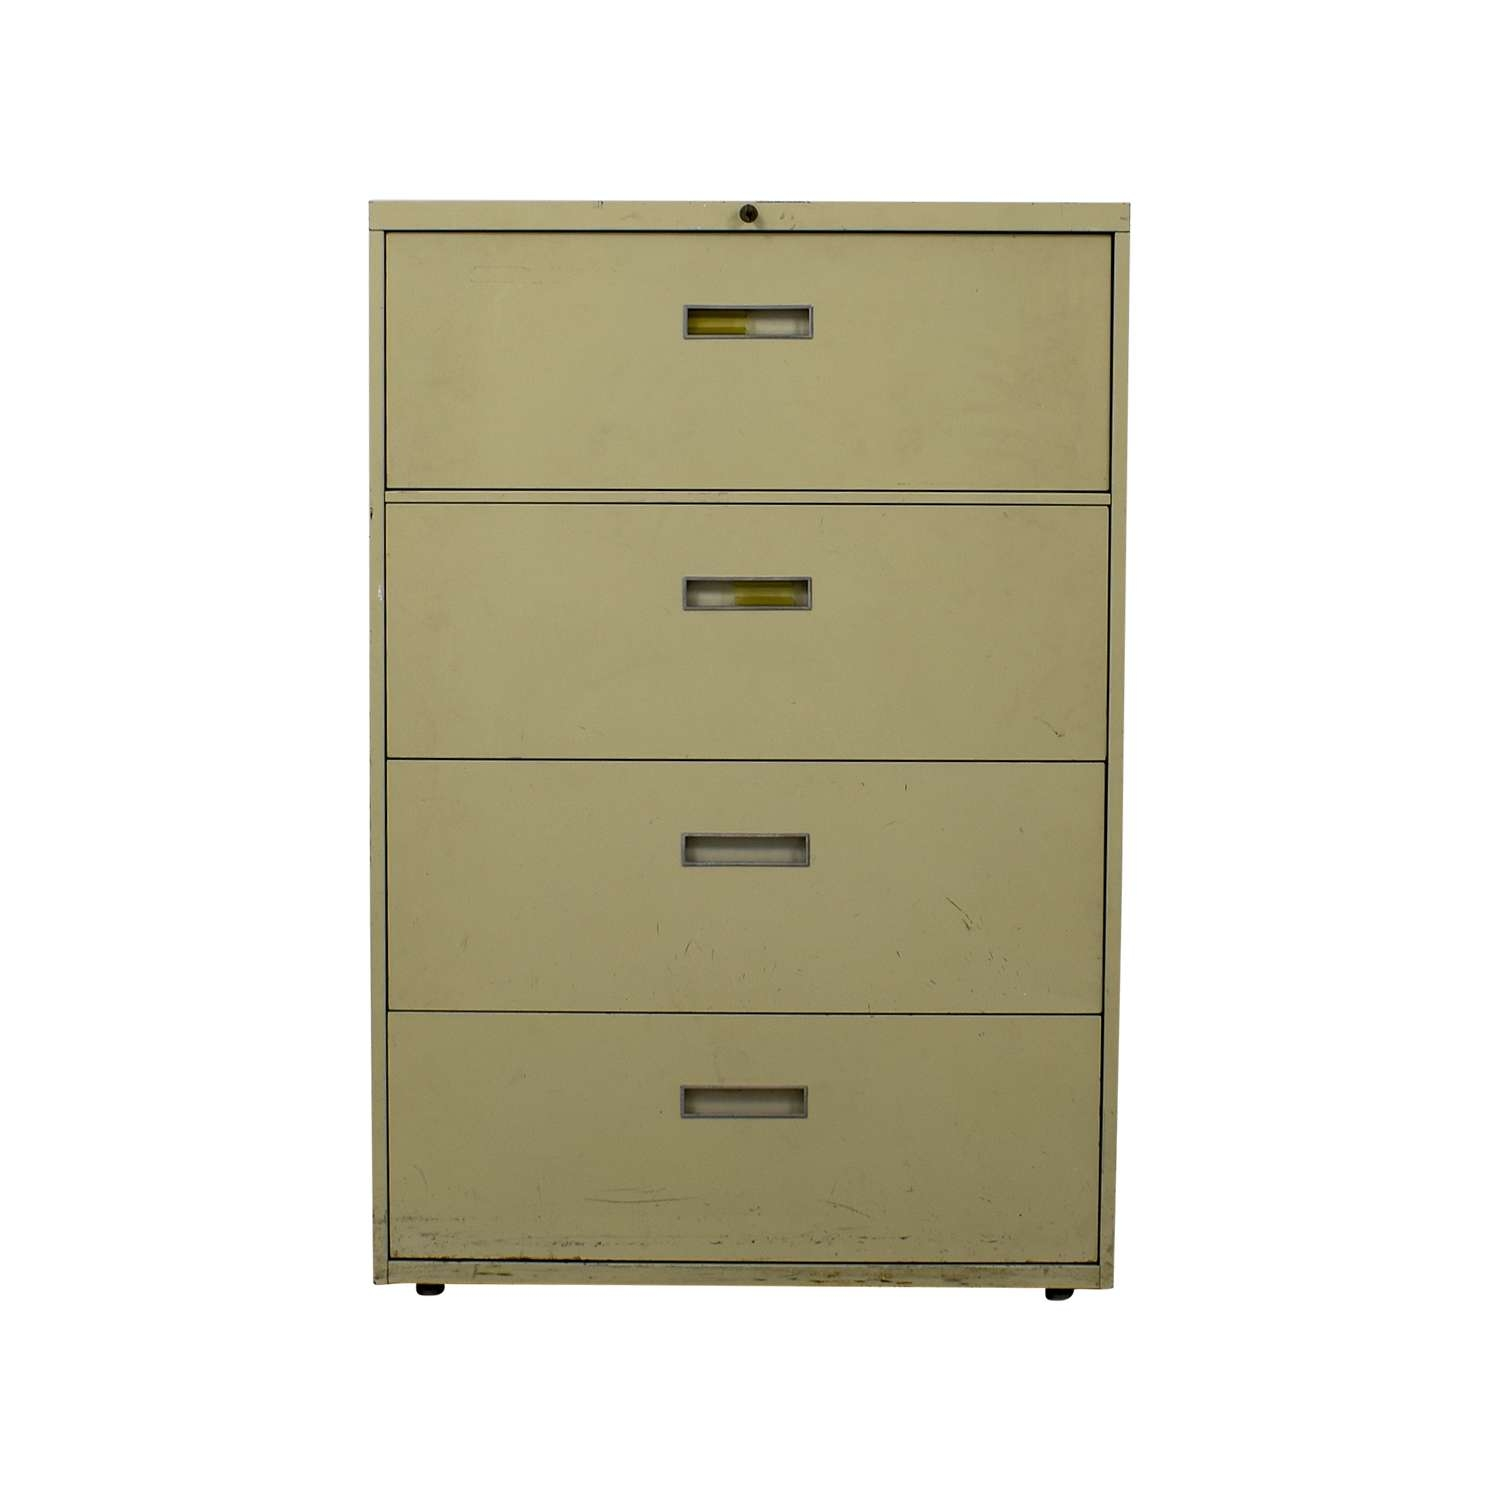 85% Off – Four Drawer Tan Lateral File Cabinet / Storage Regarding Green Sideboards (View 2 of 20)